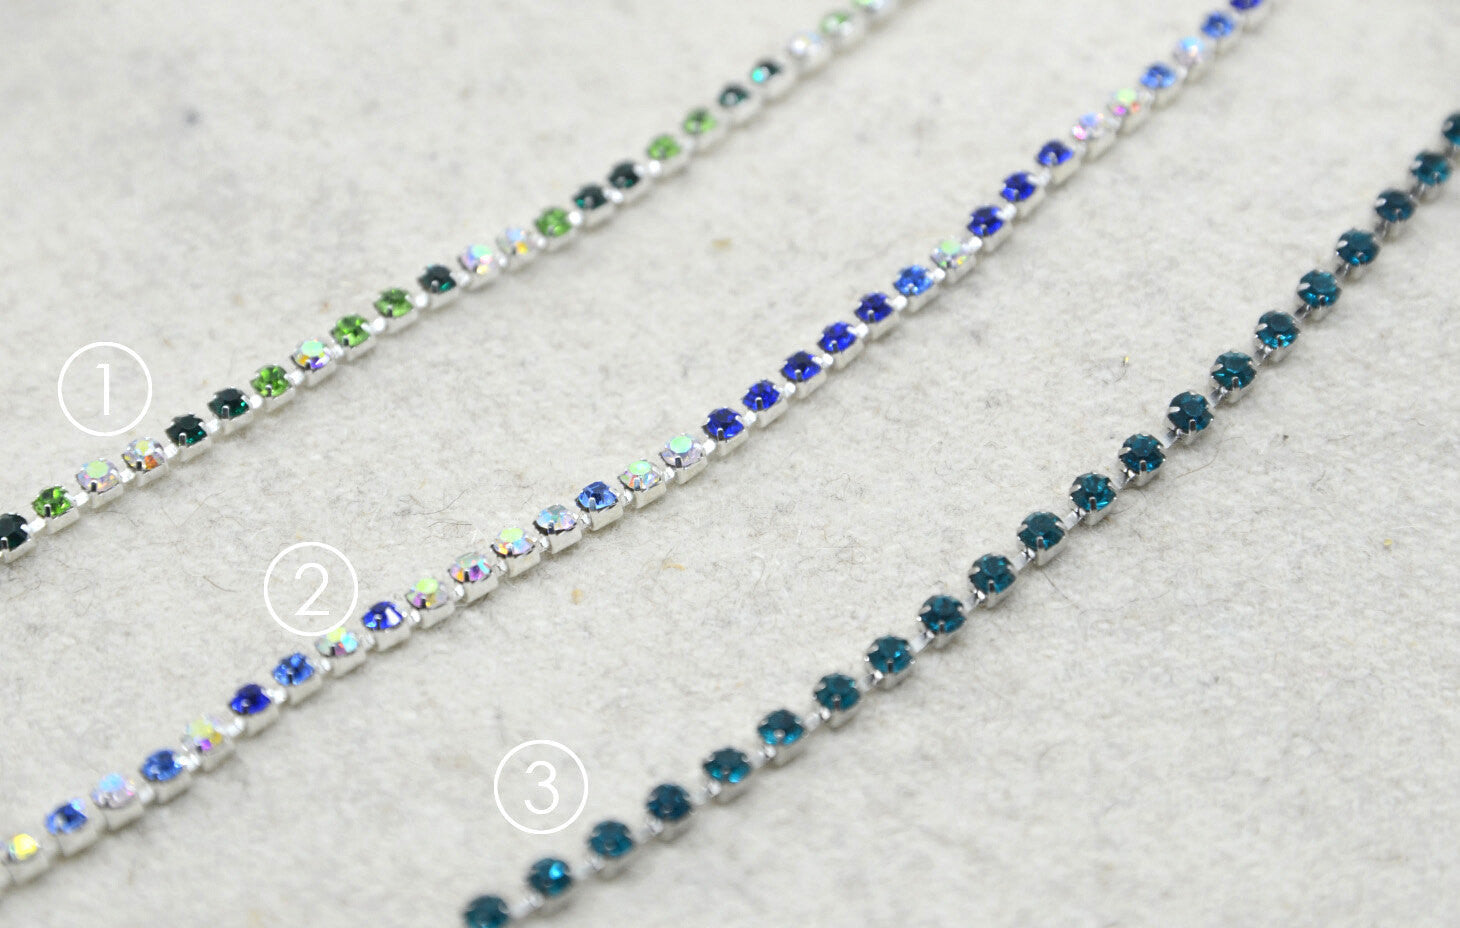 "Colorful Crystal Rhinestone Chain Trim, Wedding belt, Bridal Sash, Rhinestone Necklace,Bracelet, 1/8"" 2.5mm -1 Yard - strapcrafts"